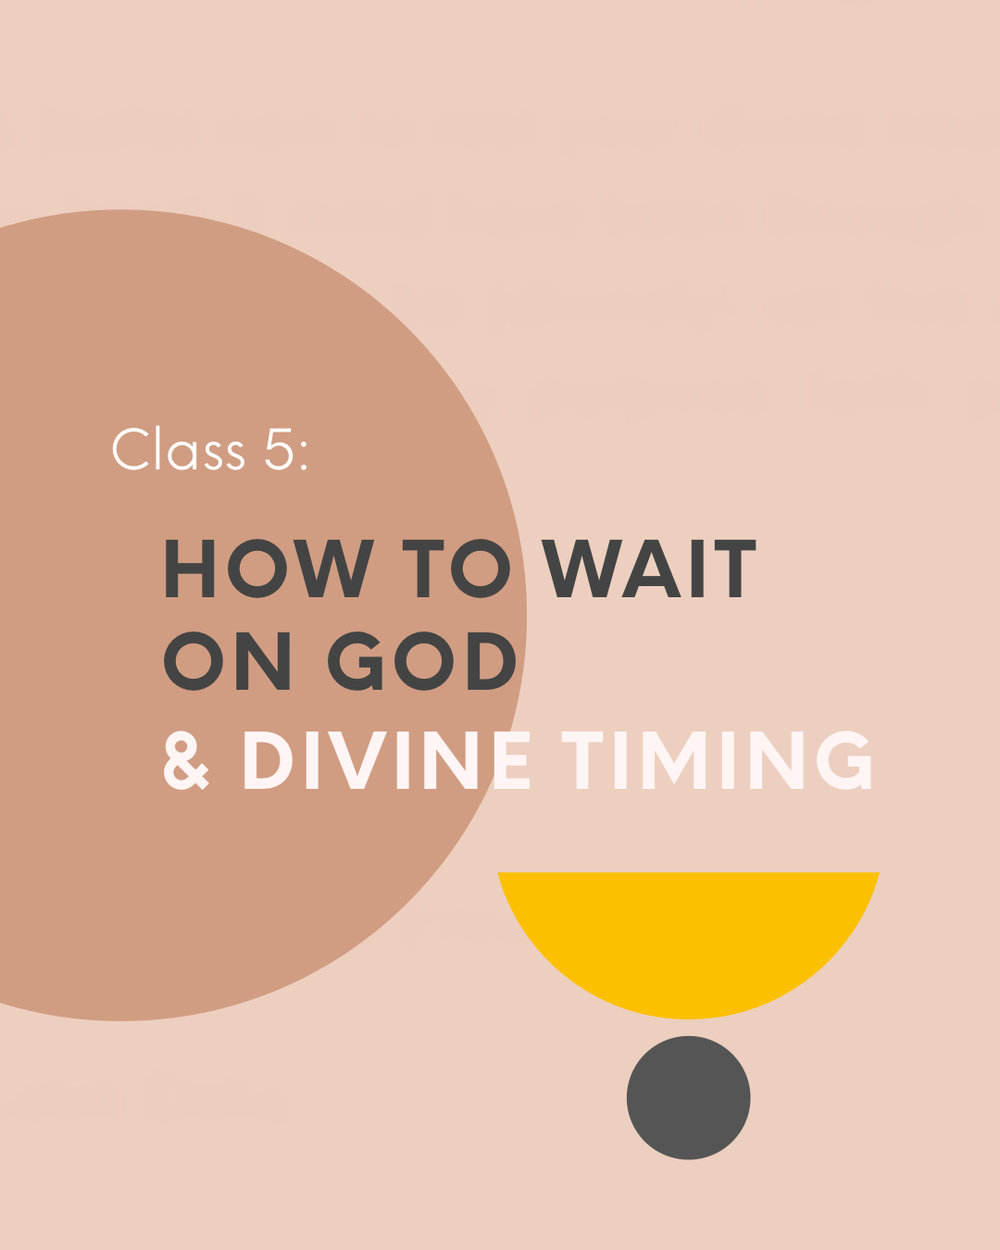 Divine Timing Class - Are you trusting the timing of your life? Are you being patient with the process? Are you fully present and making the most out of this season and process you're in?Most of our mistakes, bitterness, discontent, and unhappiness, that we experience in life, is due to not knowing how to wait on God, not knowing how to honor the Divine timing of our life, by moving prematurely, and/or by not optimizing the season we've been assigned to.We'll learn about divine timing, how to have patience on the journey, how-to discern when to be still, move on, release, and take action, how-to develop and grow where you've been planted, and how-to win and elevate, by optimizing this season you're in.